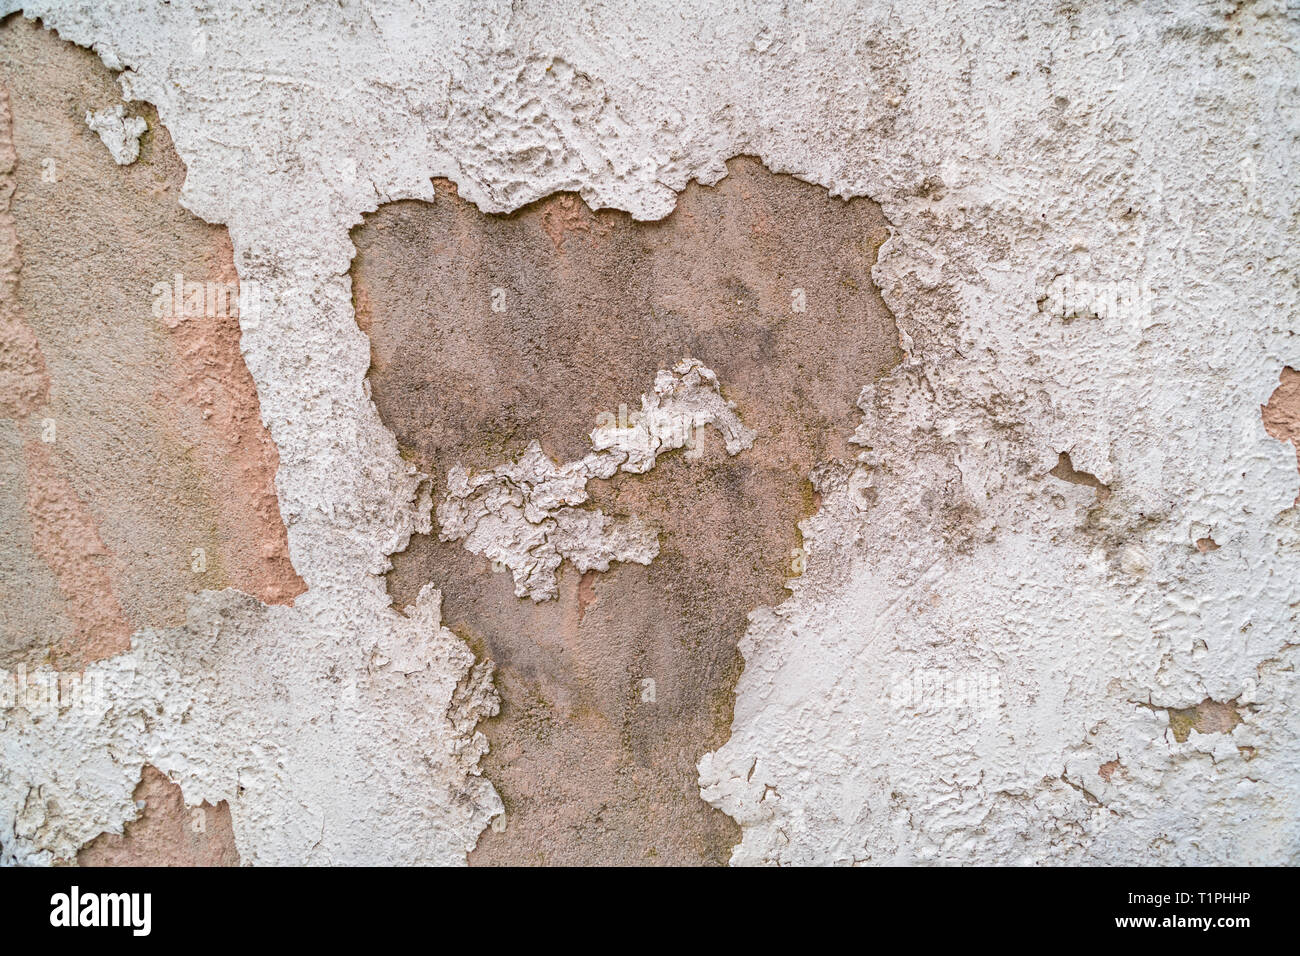 Cracked painted rendering exposing concrete or cement structure beneath. Seen better days metaphor. Old paint texture. - Stock Image